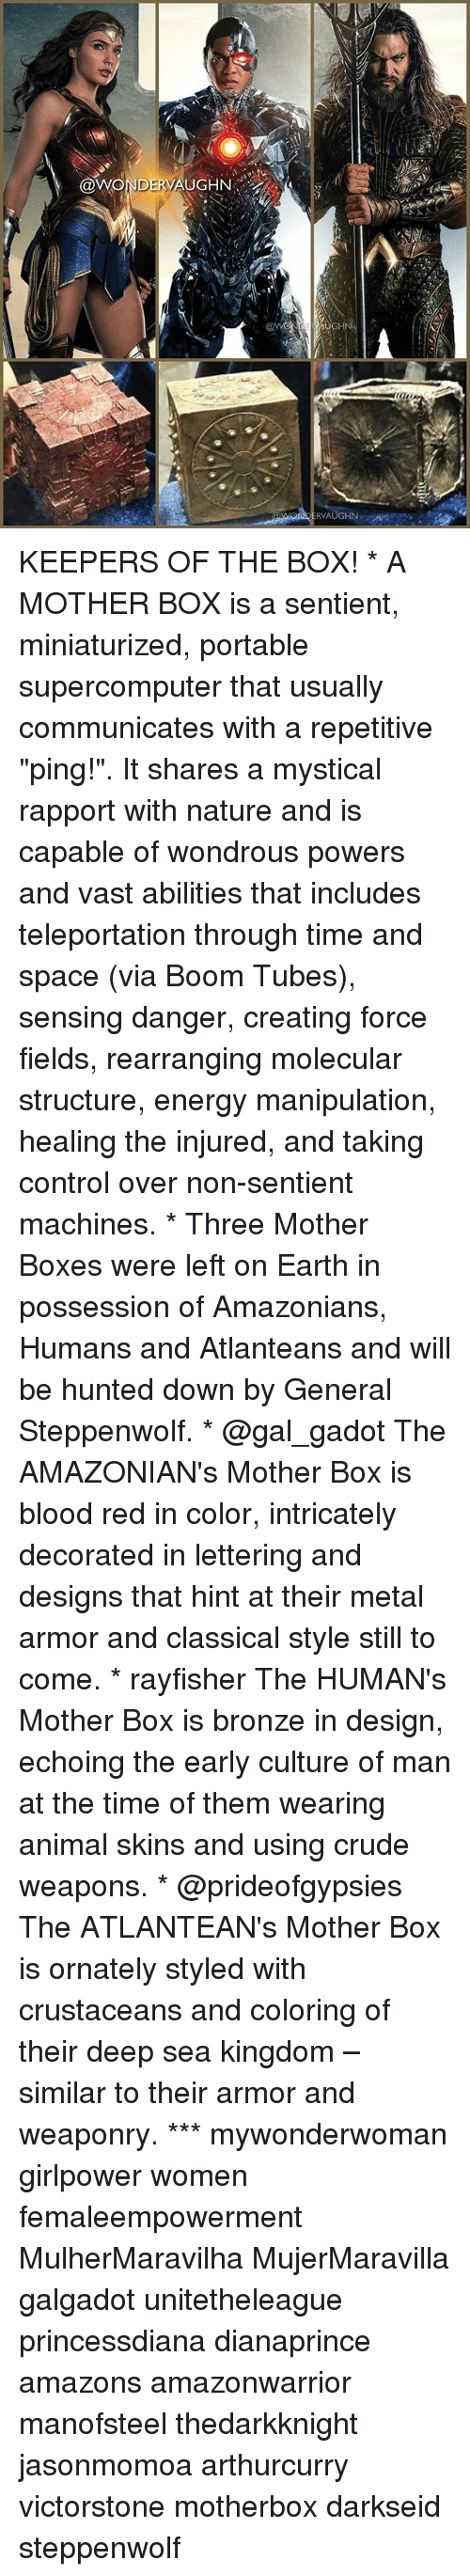 """Boxing, Energy, and Memes: @WONDERVAUGH  @vVONI  AUGHN!..  R, / KEEPERS OF THE BOX! * A MOTHER BOX is a sentient, miniaturized, portable supercomputer that usually communicates with a repetitive """"ping!"""". It shares a mystical rapport with nature and is capable of wondrous powers and vast abilities that includes teleportation through time and space (via Boom Tubes), sensing danger, creating force fields, rearranging molecular structure, energy manipulation, healing the injured, and taking control over non-sentient machines. * Three Mother Boxes were left on Earth in possession of Amazonians, Humans and Atlanteans and will be hunted down by General Steppenwolf. * @gal_gadot The AMAZONIAN's Mother Box is blood red in color, intricately decorated in lettering and designs that hint at their metal armor and classical style still to come. * rayfisher The HUMAN's Mother Box is bronze in design, echoing the early culture of man at the time of them wearing animal skins and using crude weapons. * @prideofgypsies The ATLANTEAN's Mother Box is ornately styled with crustaceans and coloring of their deep sea kingdom – similar to their armor and weaponry. *** mywonderwoman girlpower women femaleempowerment MulherMaravilha MujerMaravilla galgadot unitetheleague princessdiana dianaprince amazons amazonwarrior manofsteel thedarkknight jasonmomoa arthurcurry victorstone motherbox darkseid steppenwolf"""